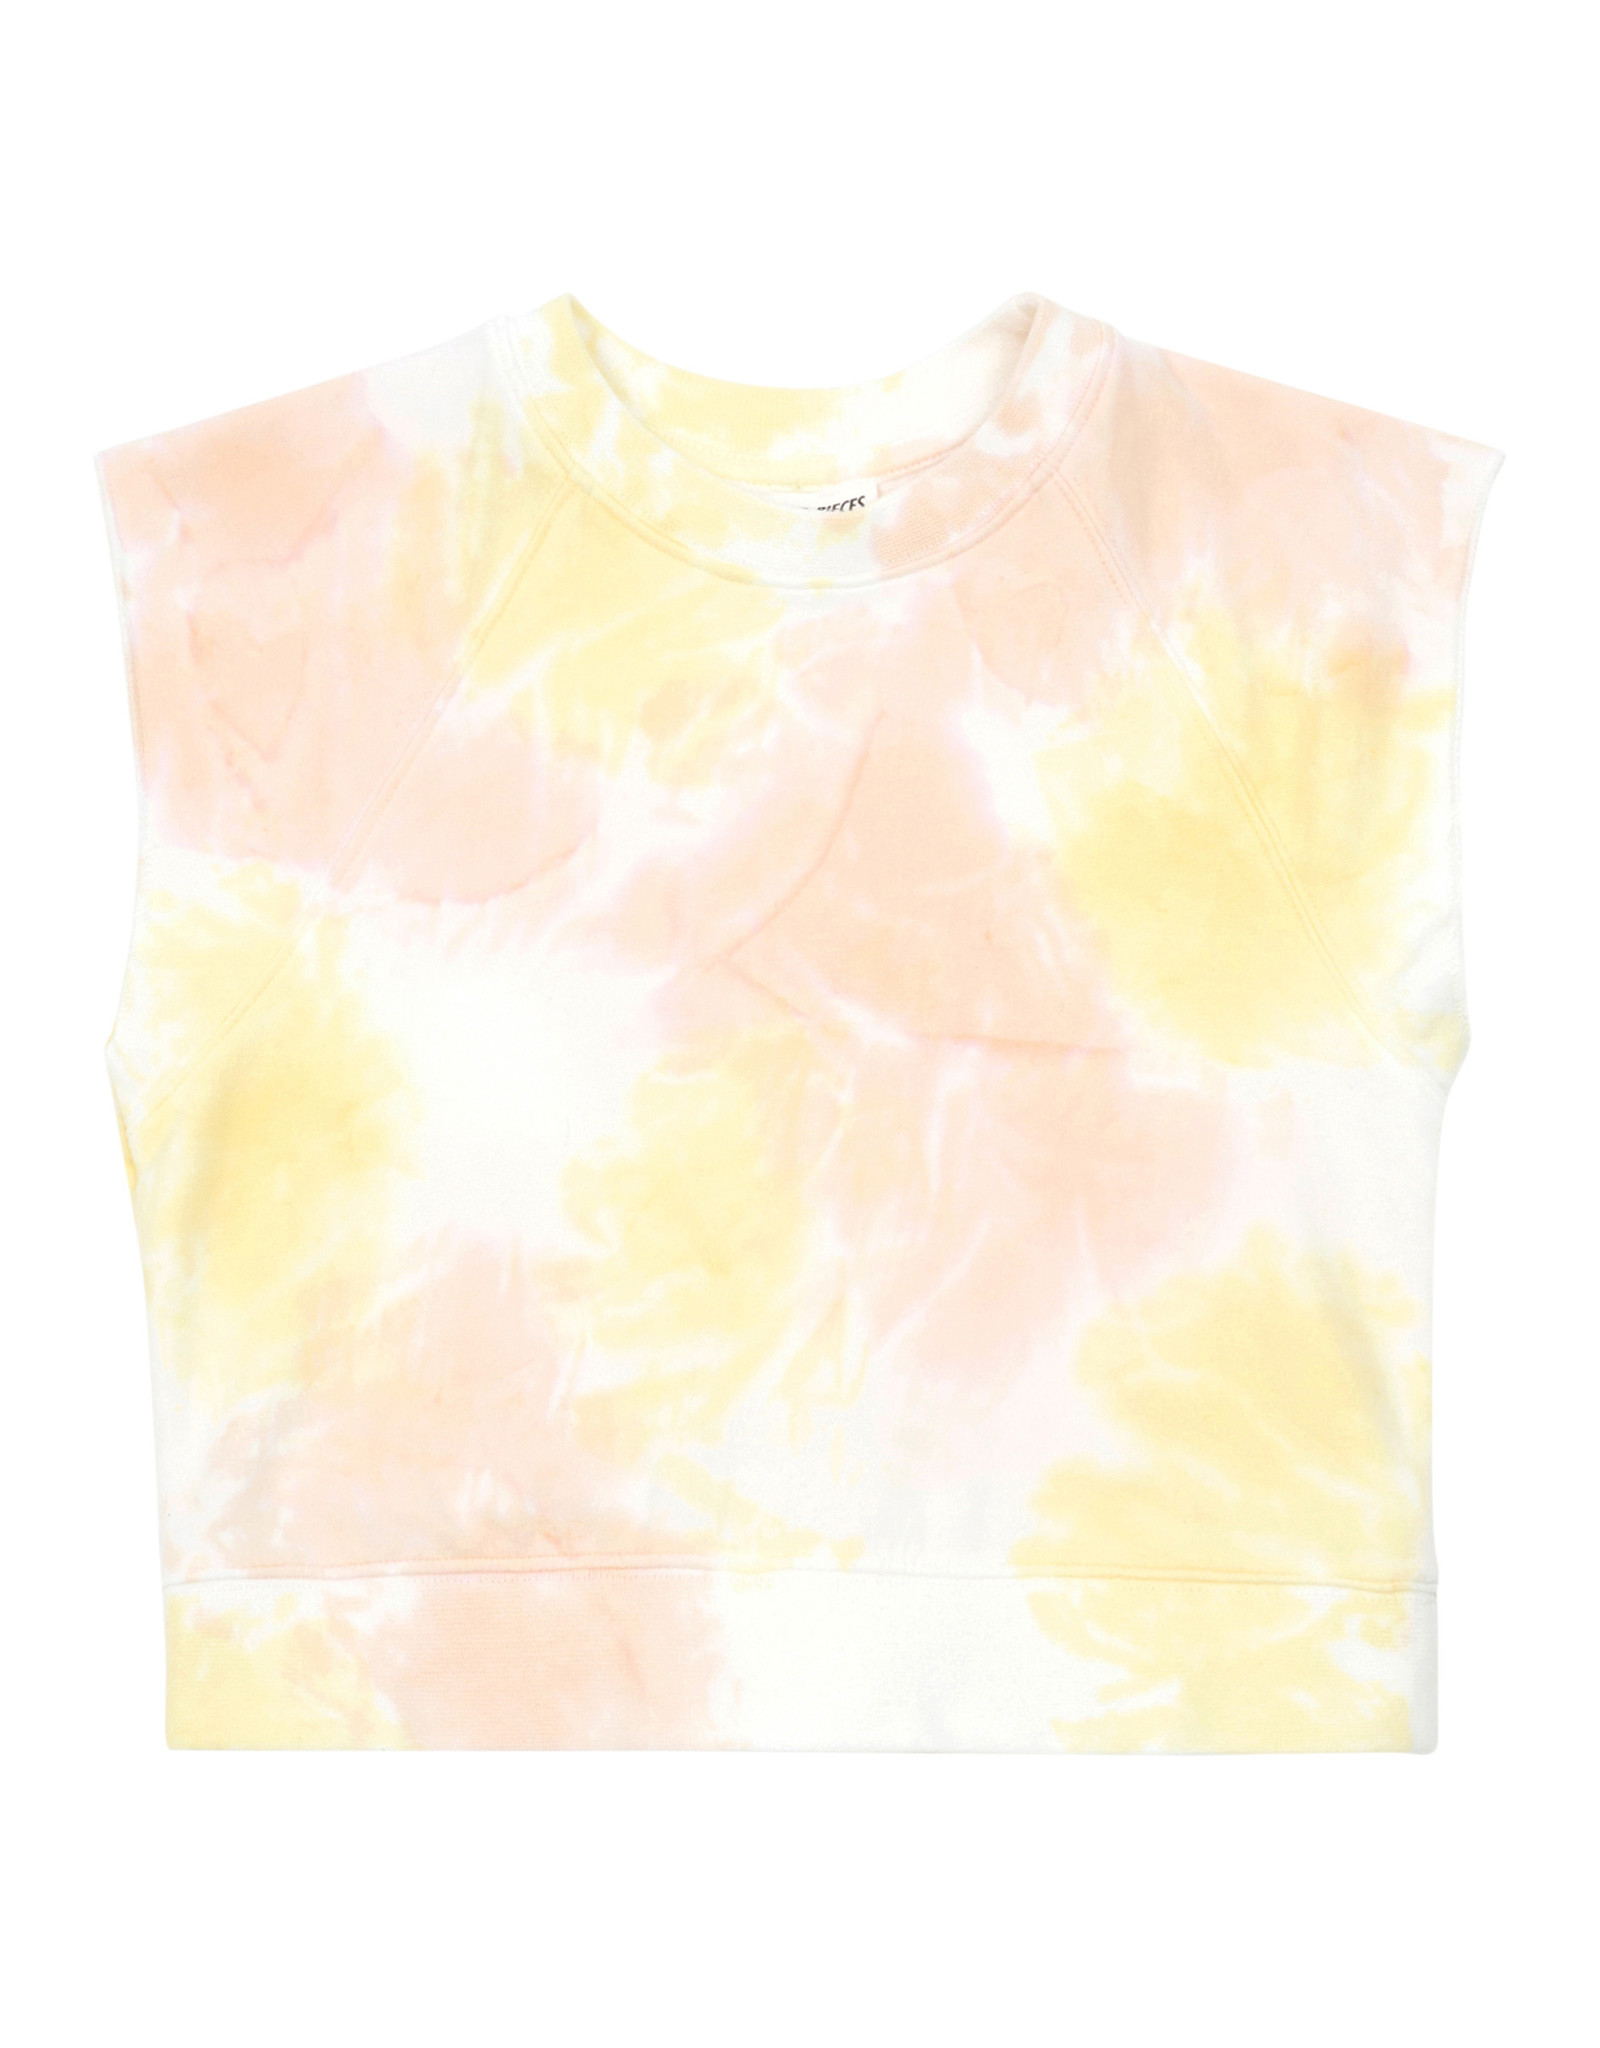 Hundred Pieces HPCS SS21 Sweat Tie Dye coton bio candy pink